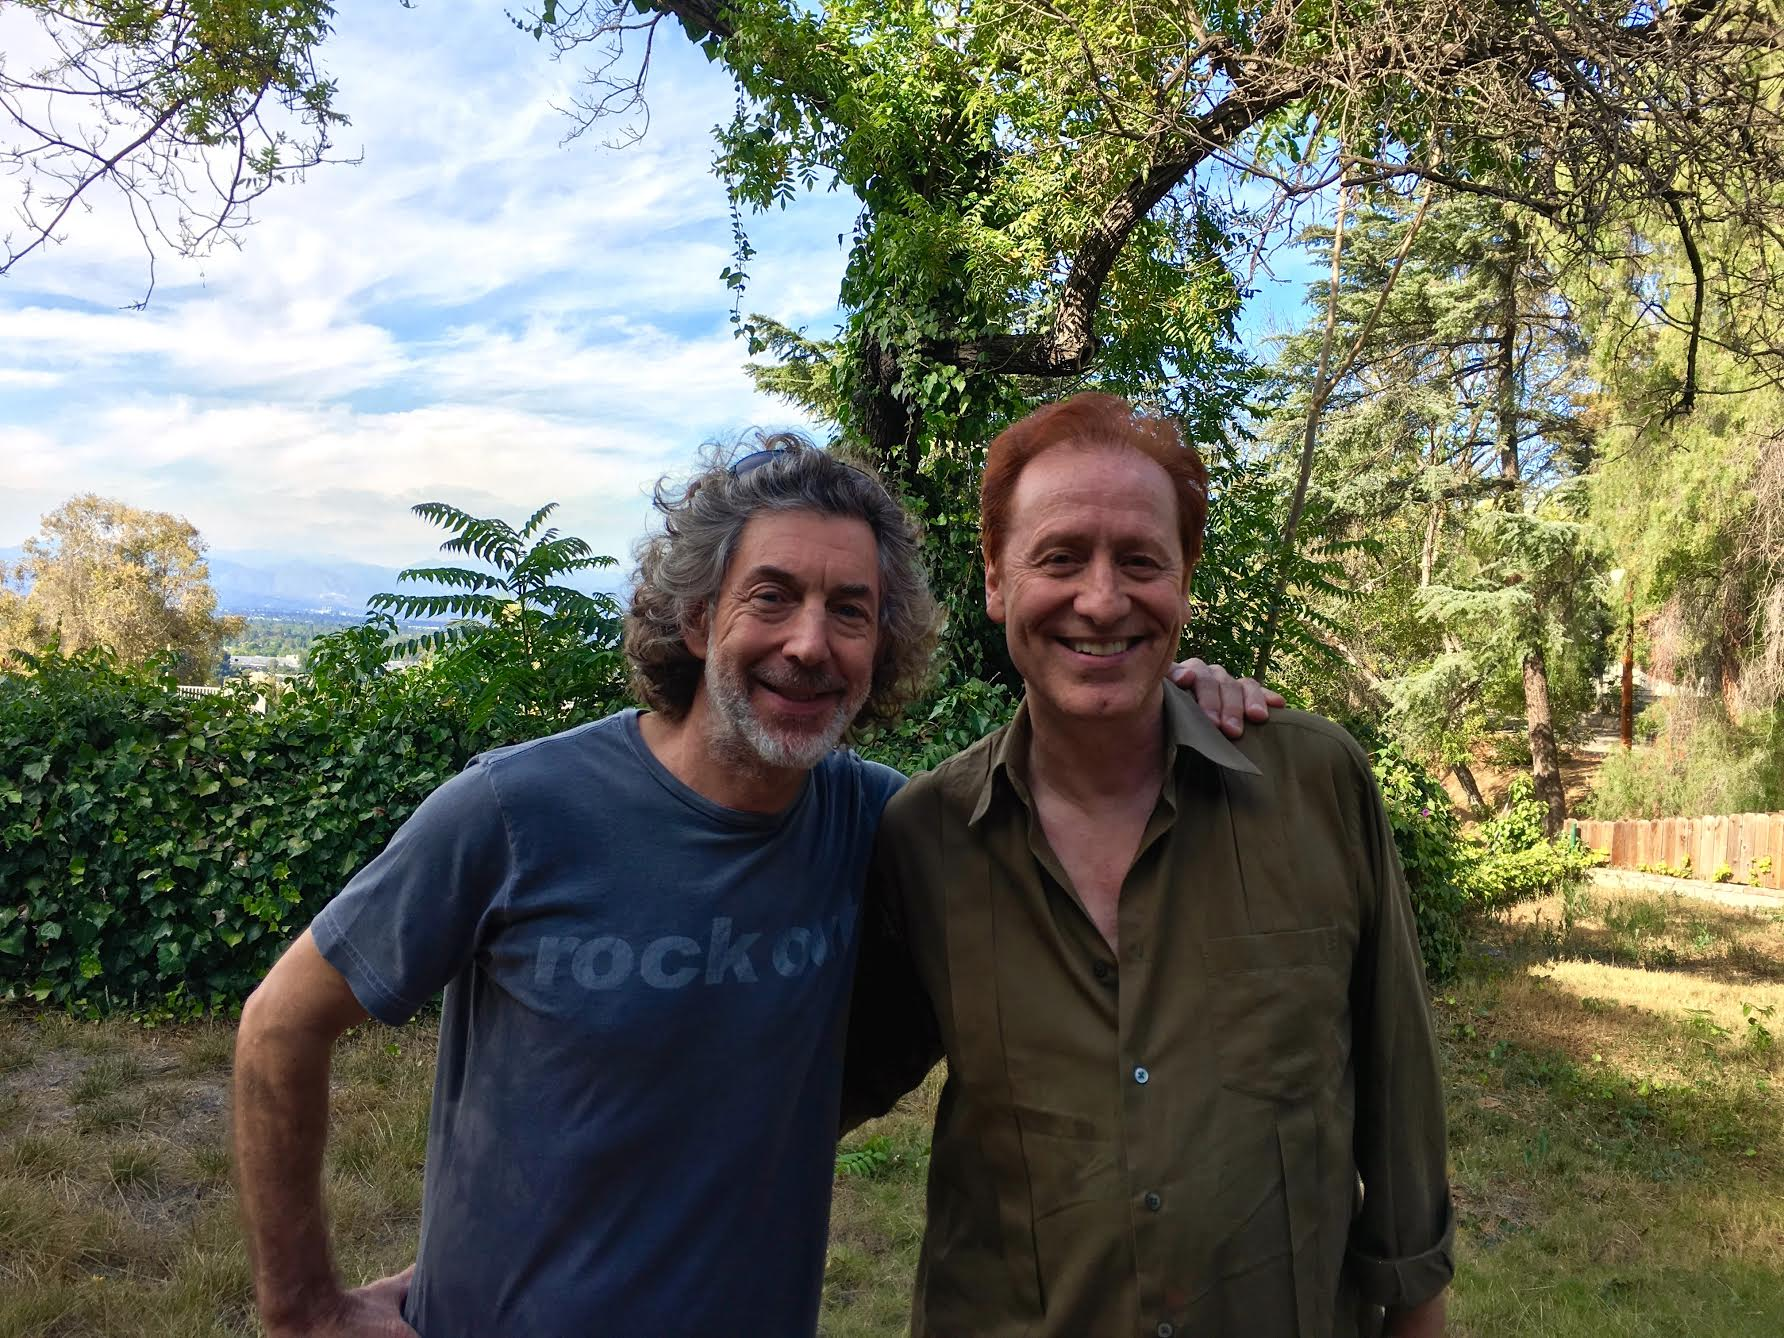 Craig with Simon Phillips, drummer of Toto.